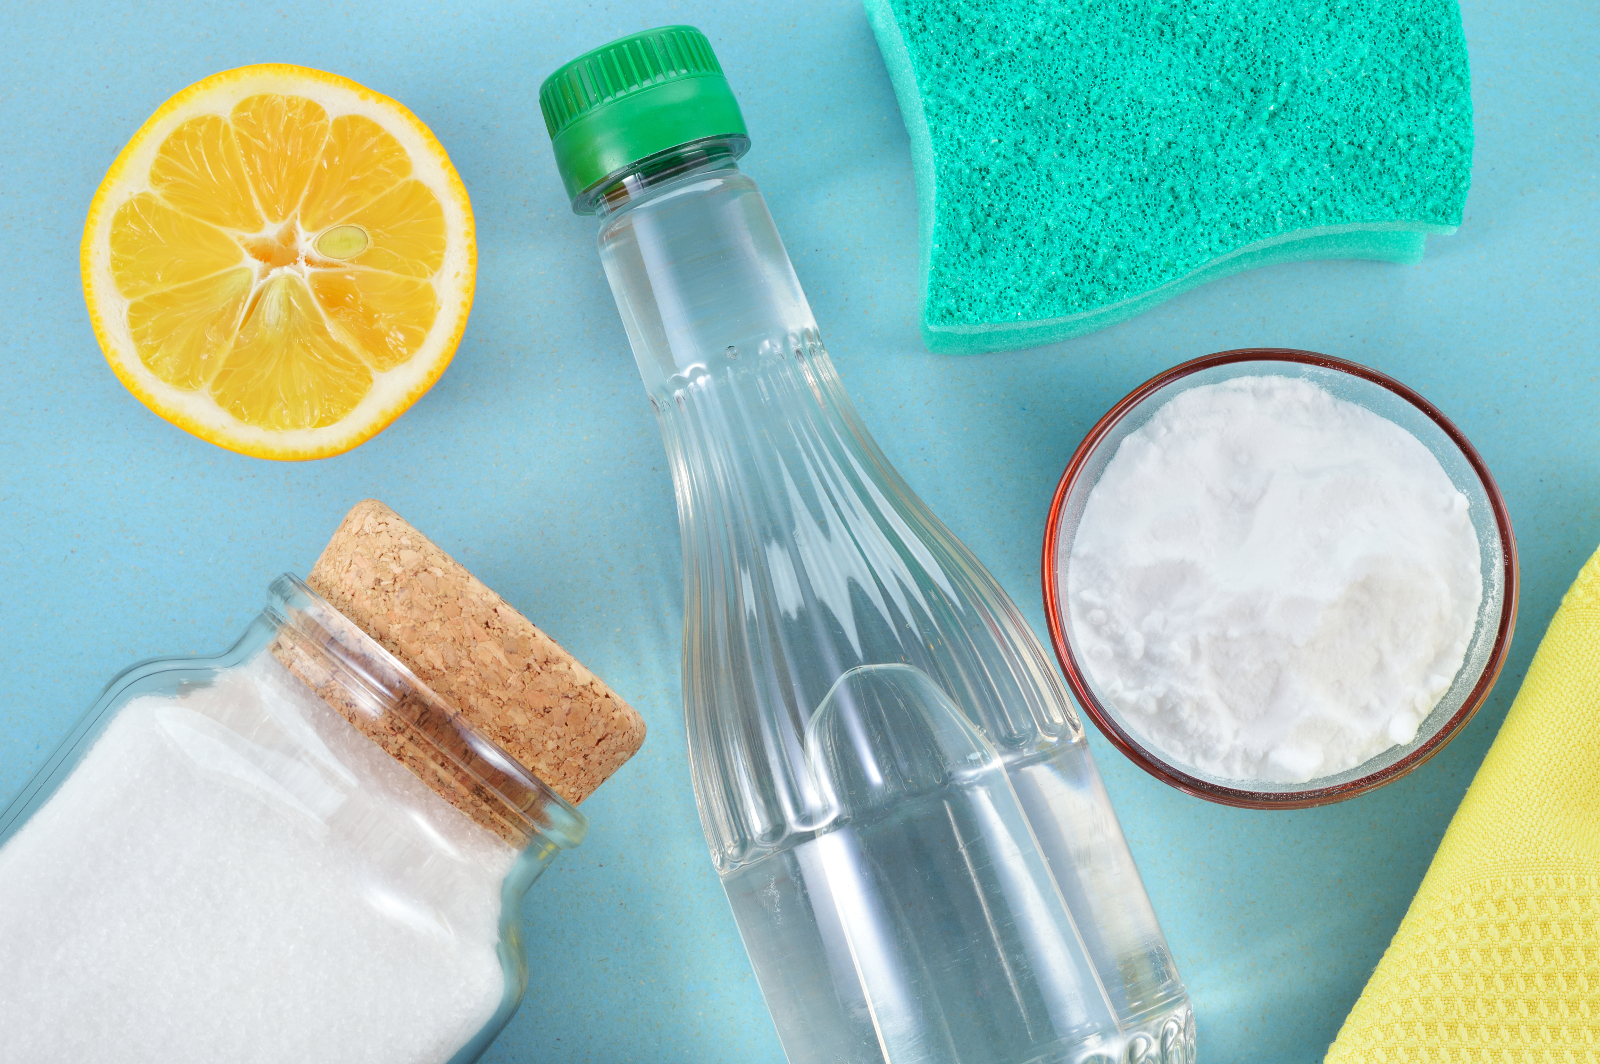 6 Life Hacks Using Vinegar That Can Help You Crush Toxins and Plastic in Your Home